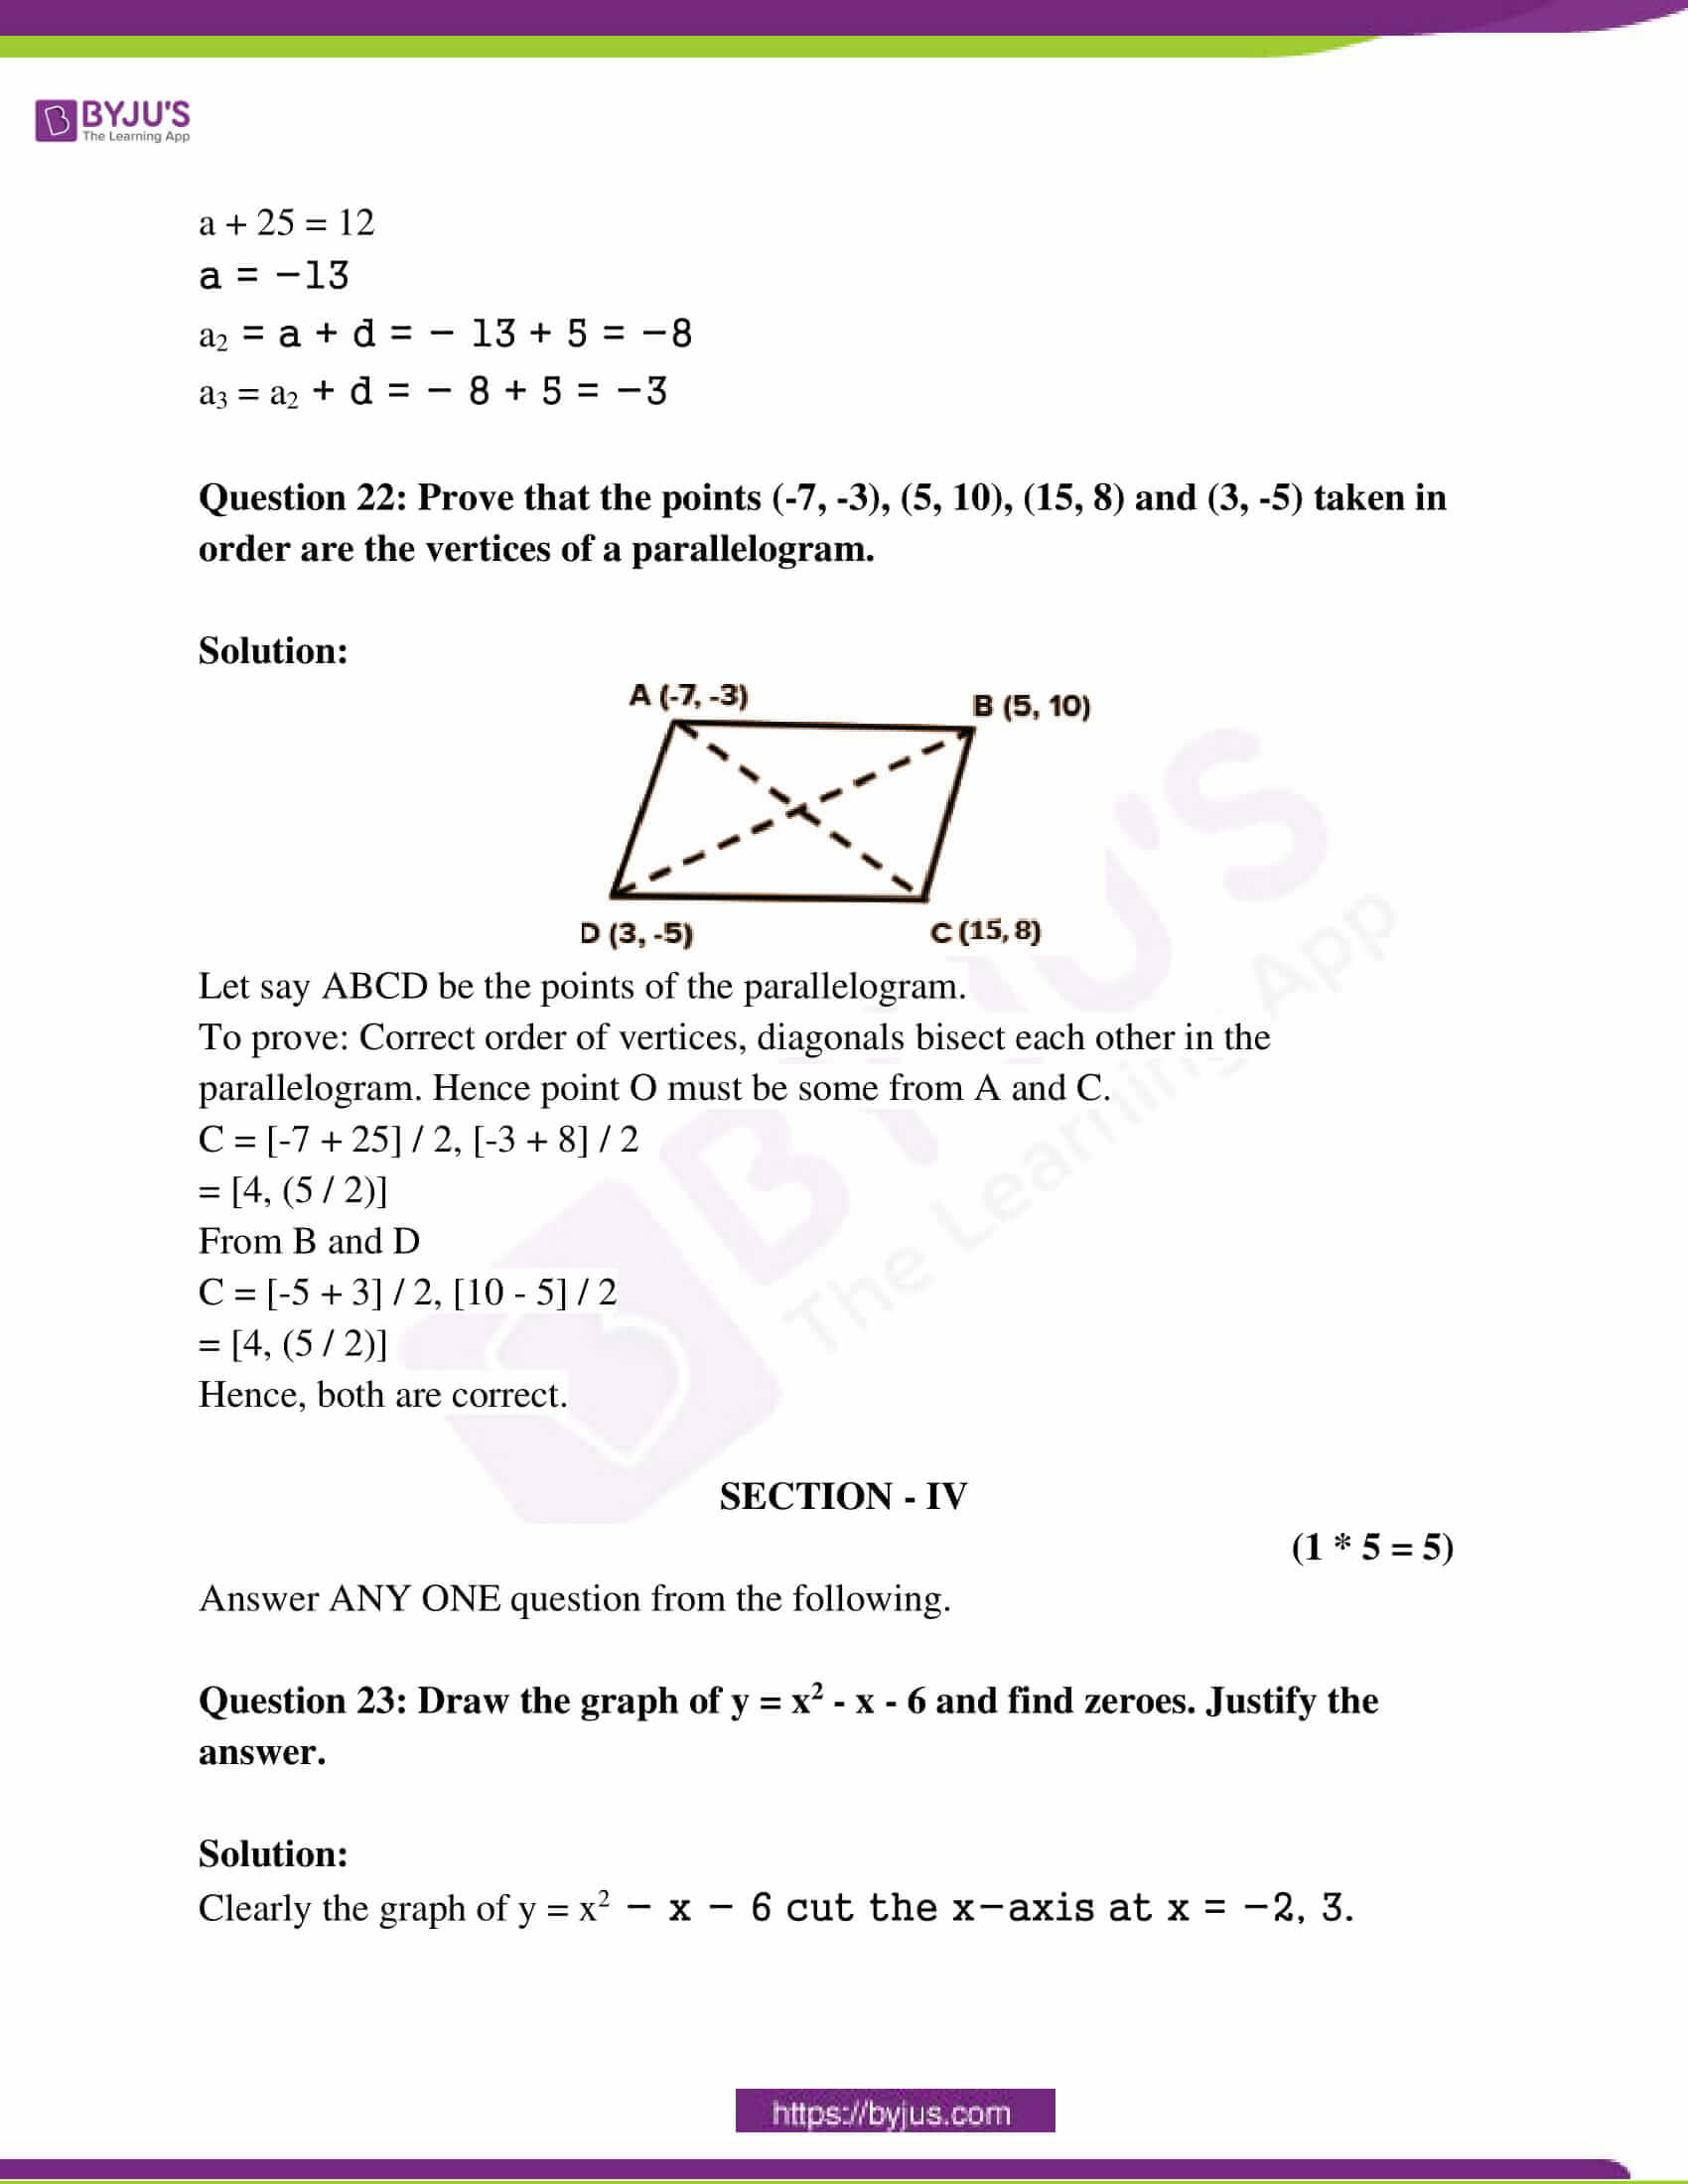 ap class 10 maths question paper 1 sol march 2015 12